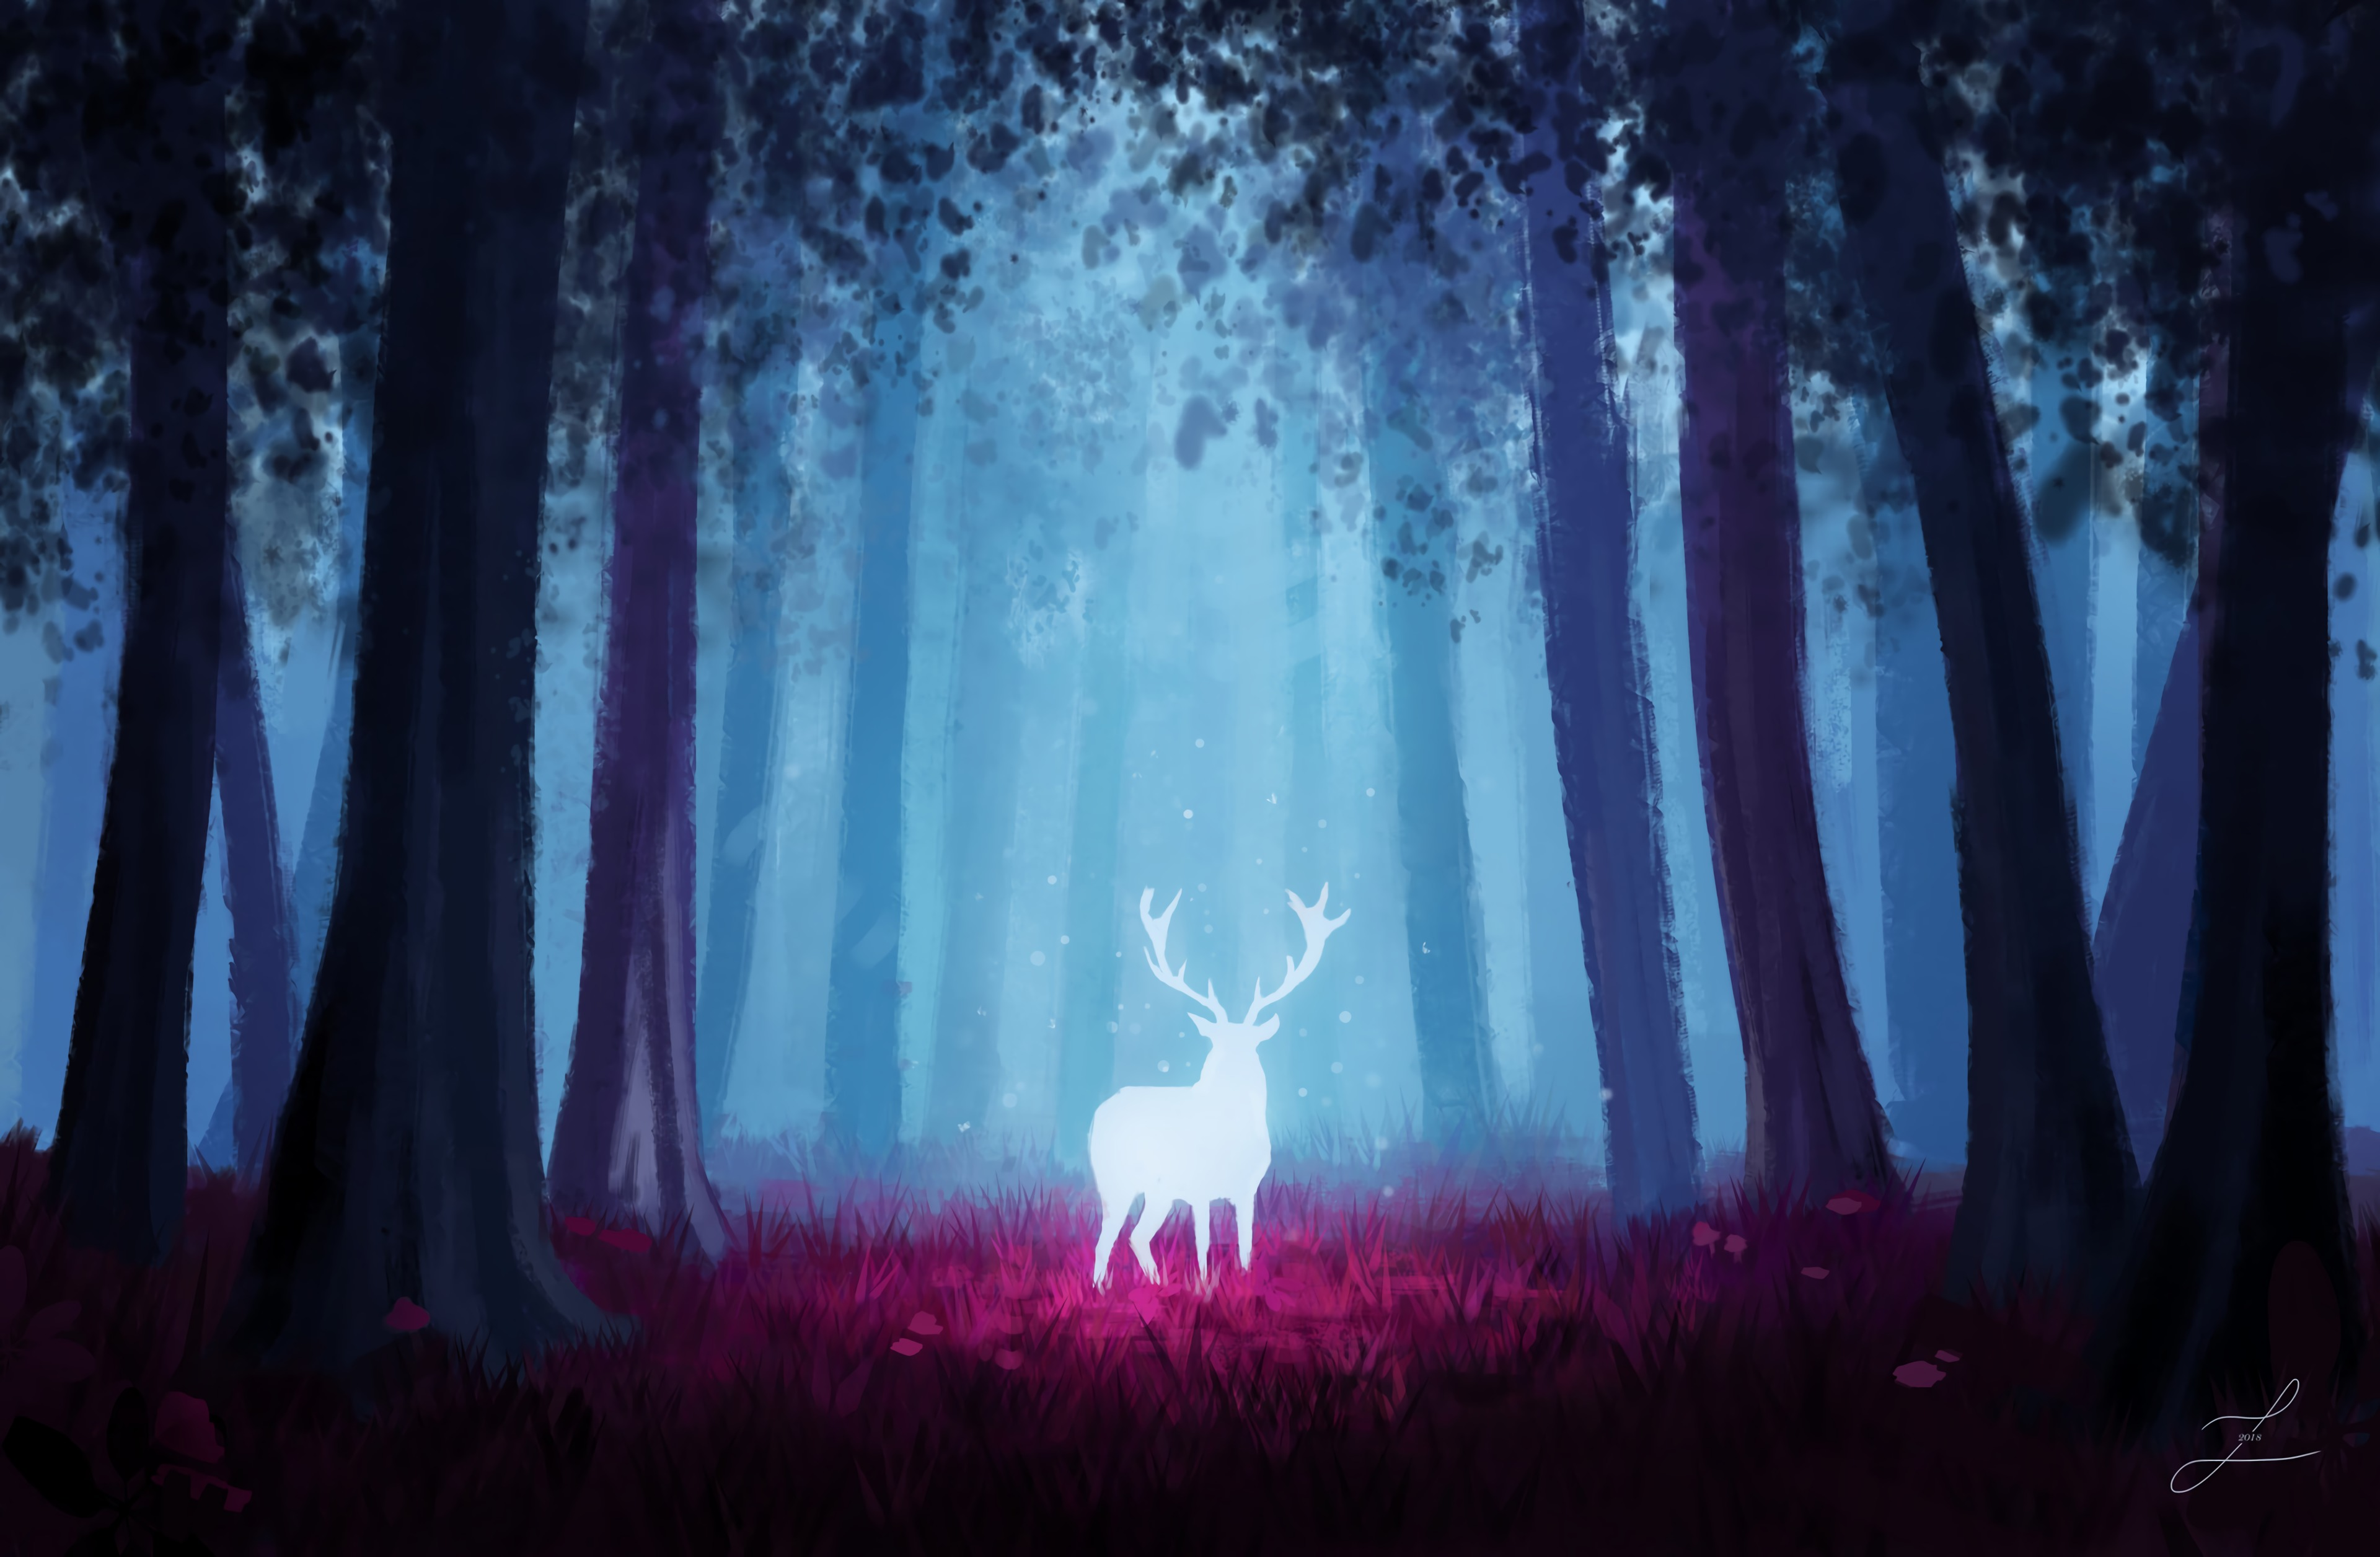 92638 download wallpaper Deer, Forest, Art, Shine, Light, Glow screensavers and pictures for free